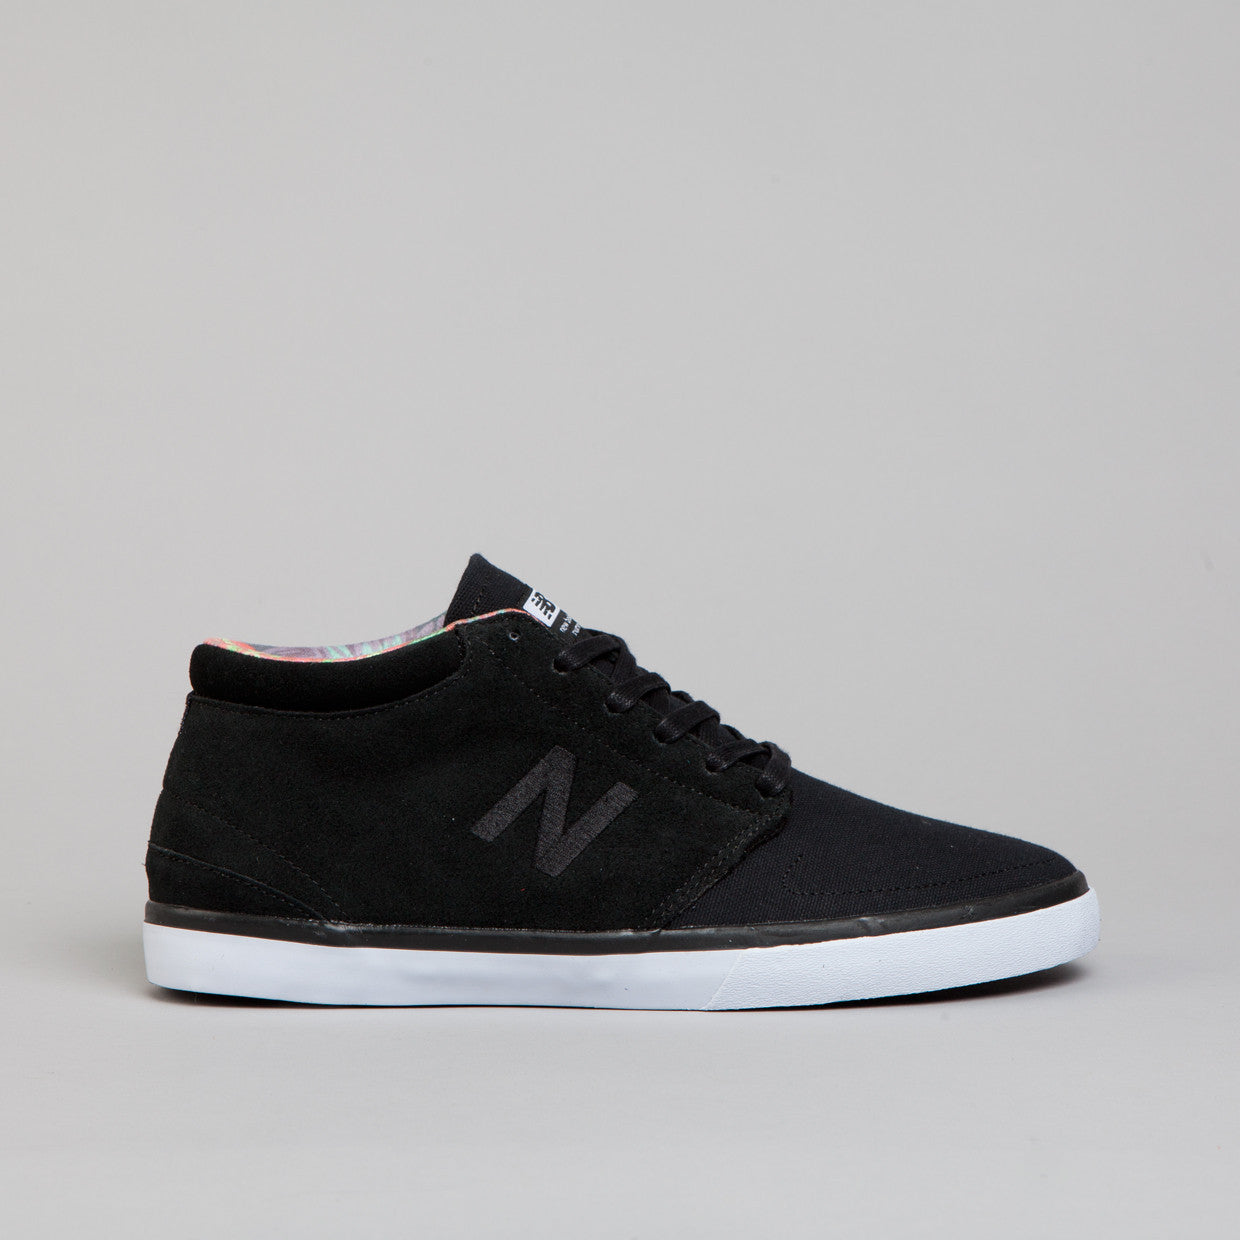 New Balance Numeric Brighton High 354 Shoes